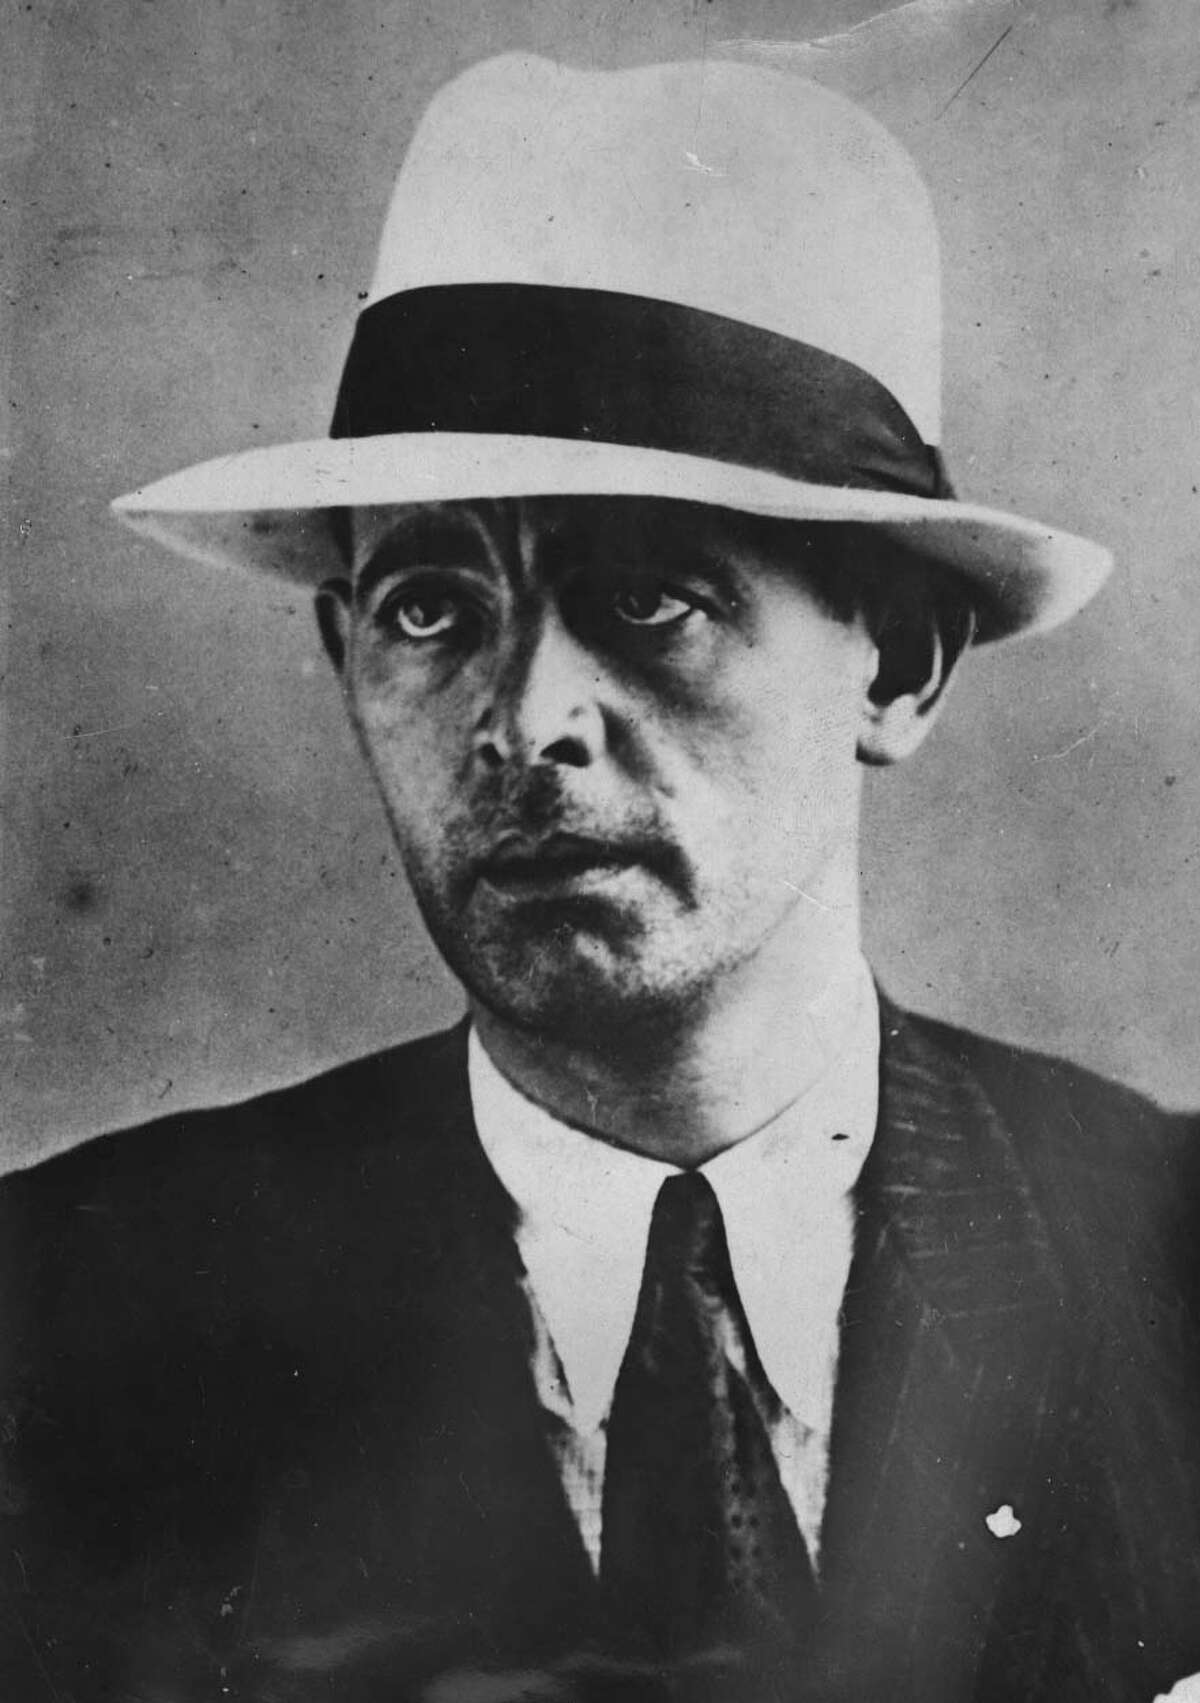 Diamond went on trial in Troy for the kidnapping and torture of trucker Grover Parks. He was acquitted of all charges on December 17, 1931. In the early hours of December 18, he was killed with three bullets to the head in a rooming house on 67 Dove St. in Albany.Read more about